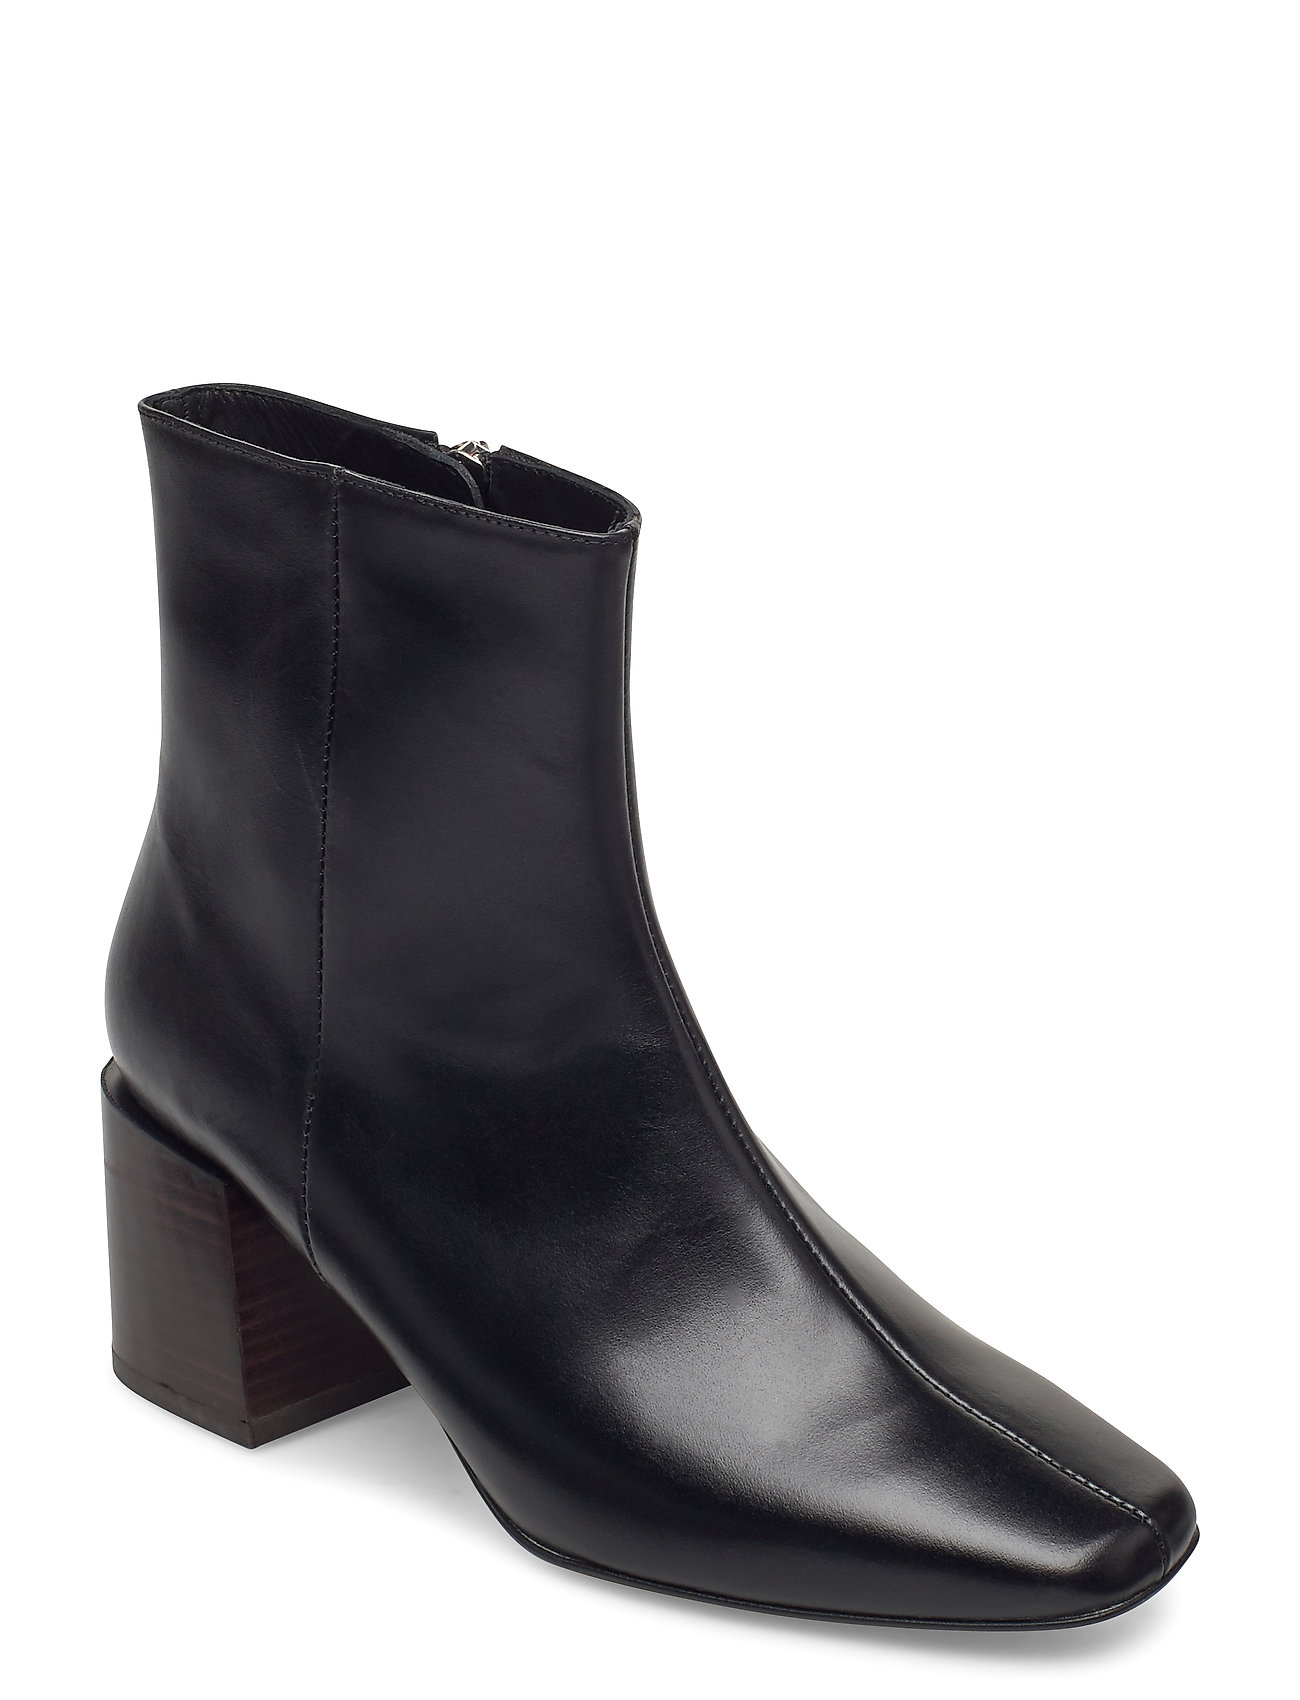 Image of Ida Black Leather Shoes Boots Ankle Boots Ankle Boot - Heel Sort Flattered (3452242681)